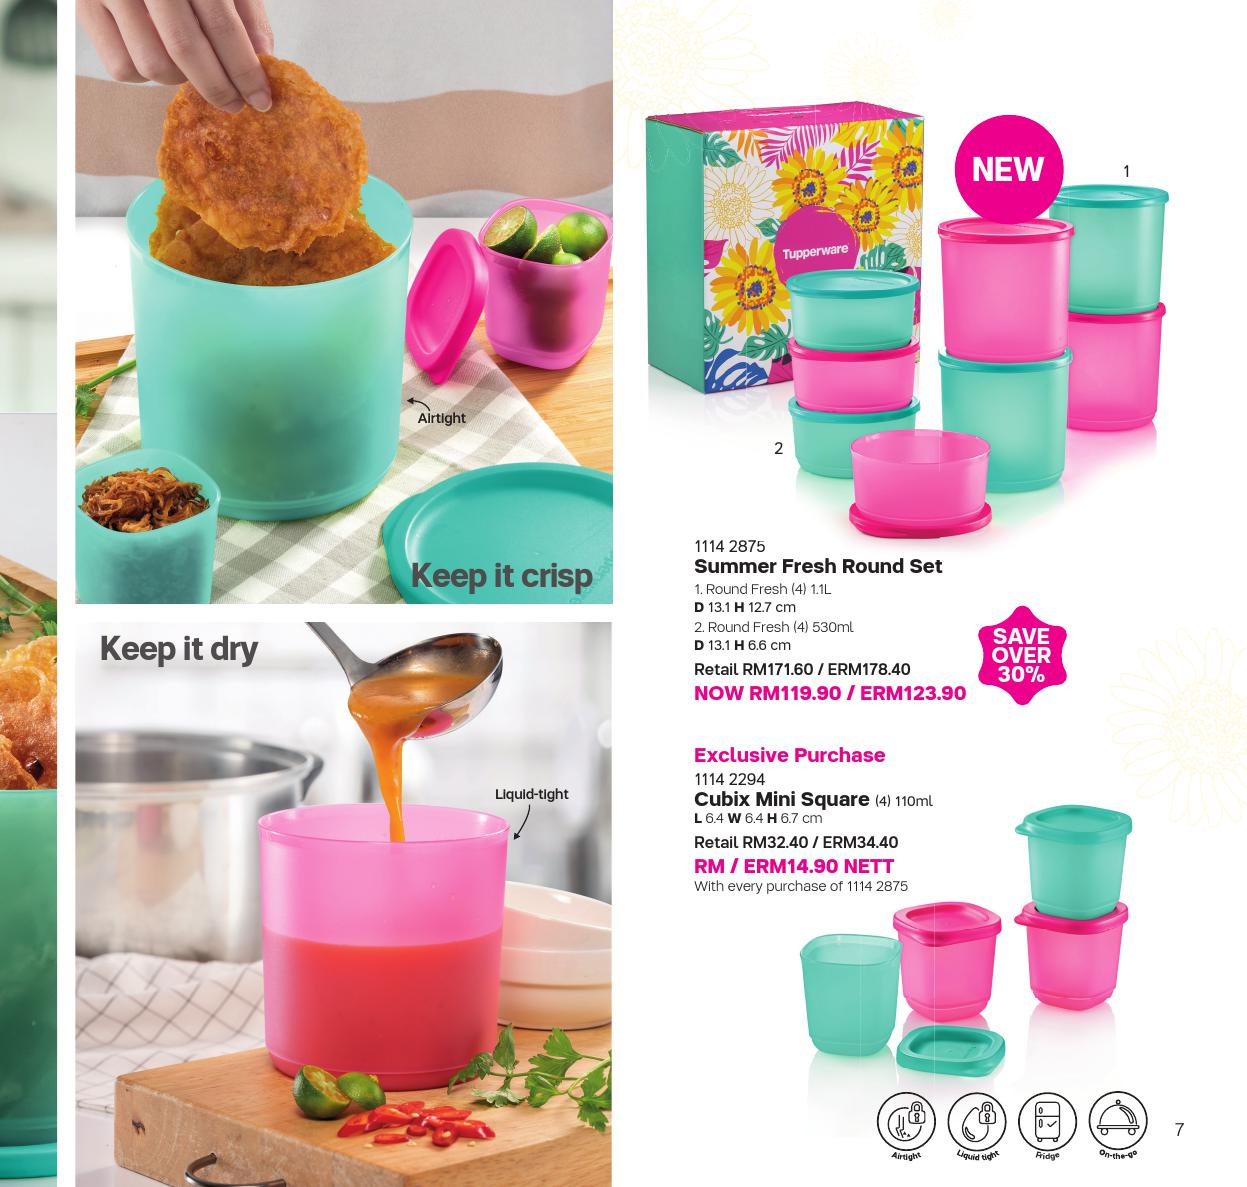 10 Feb - 28 Feb 2019 | Tupperware Plus